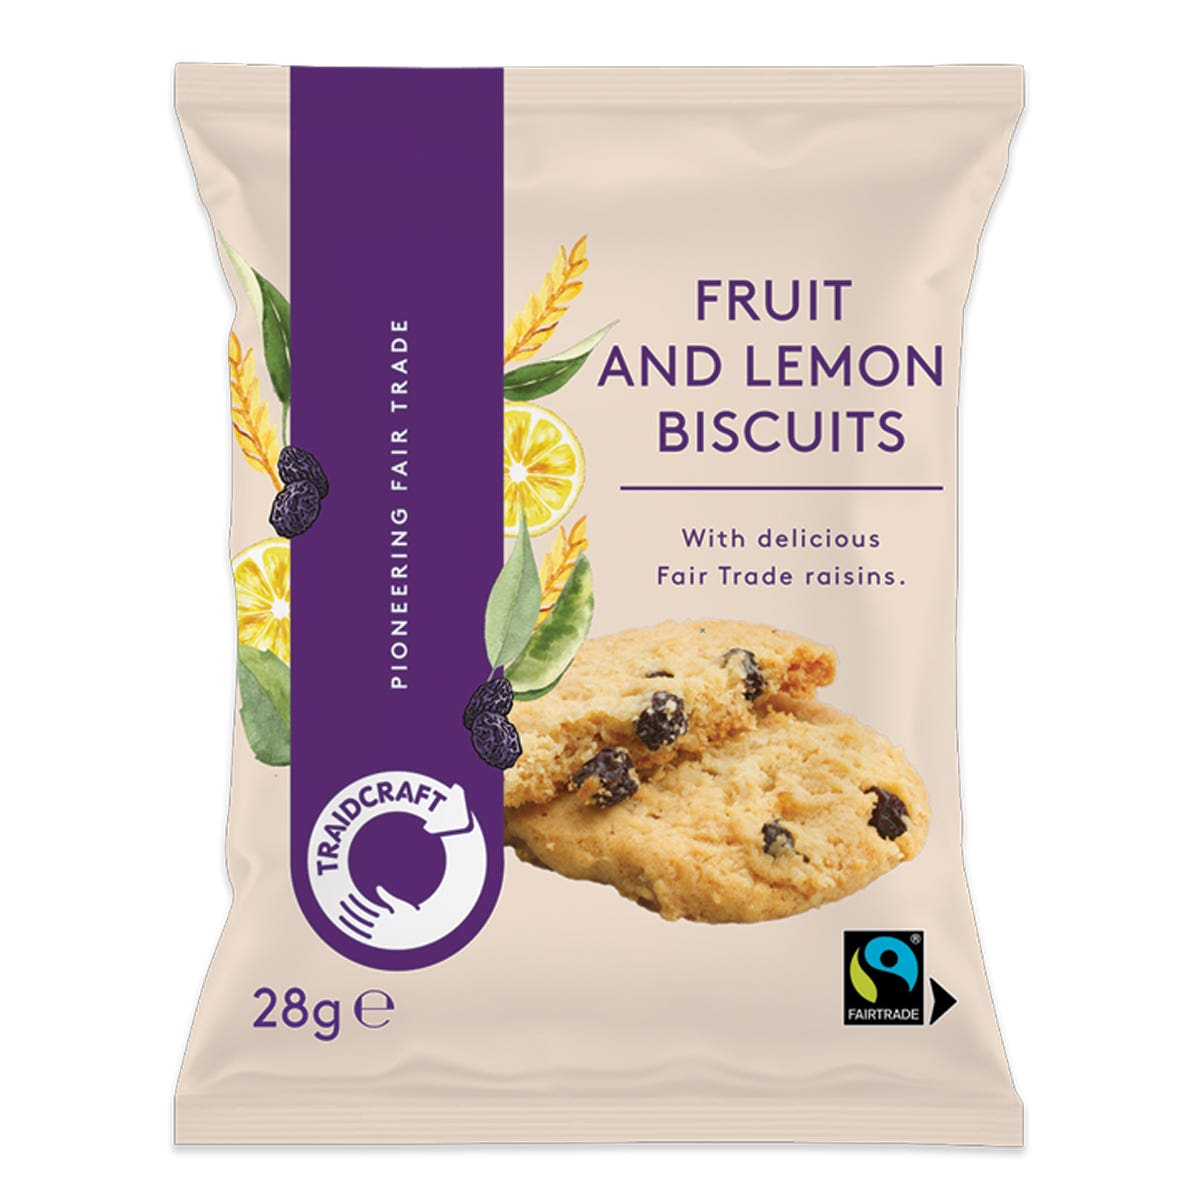 Traidcraft Fruit & Lemon Biscuits (20x28g)